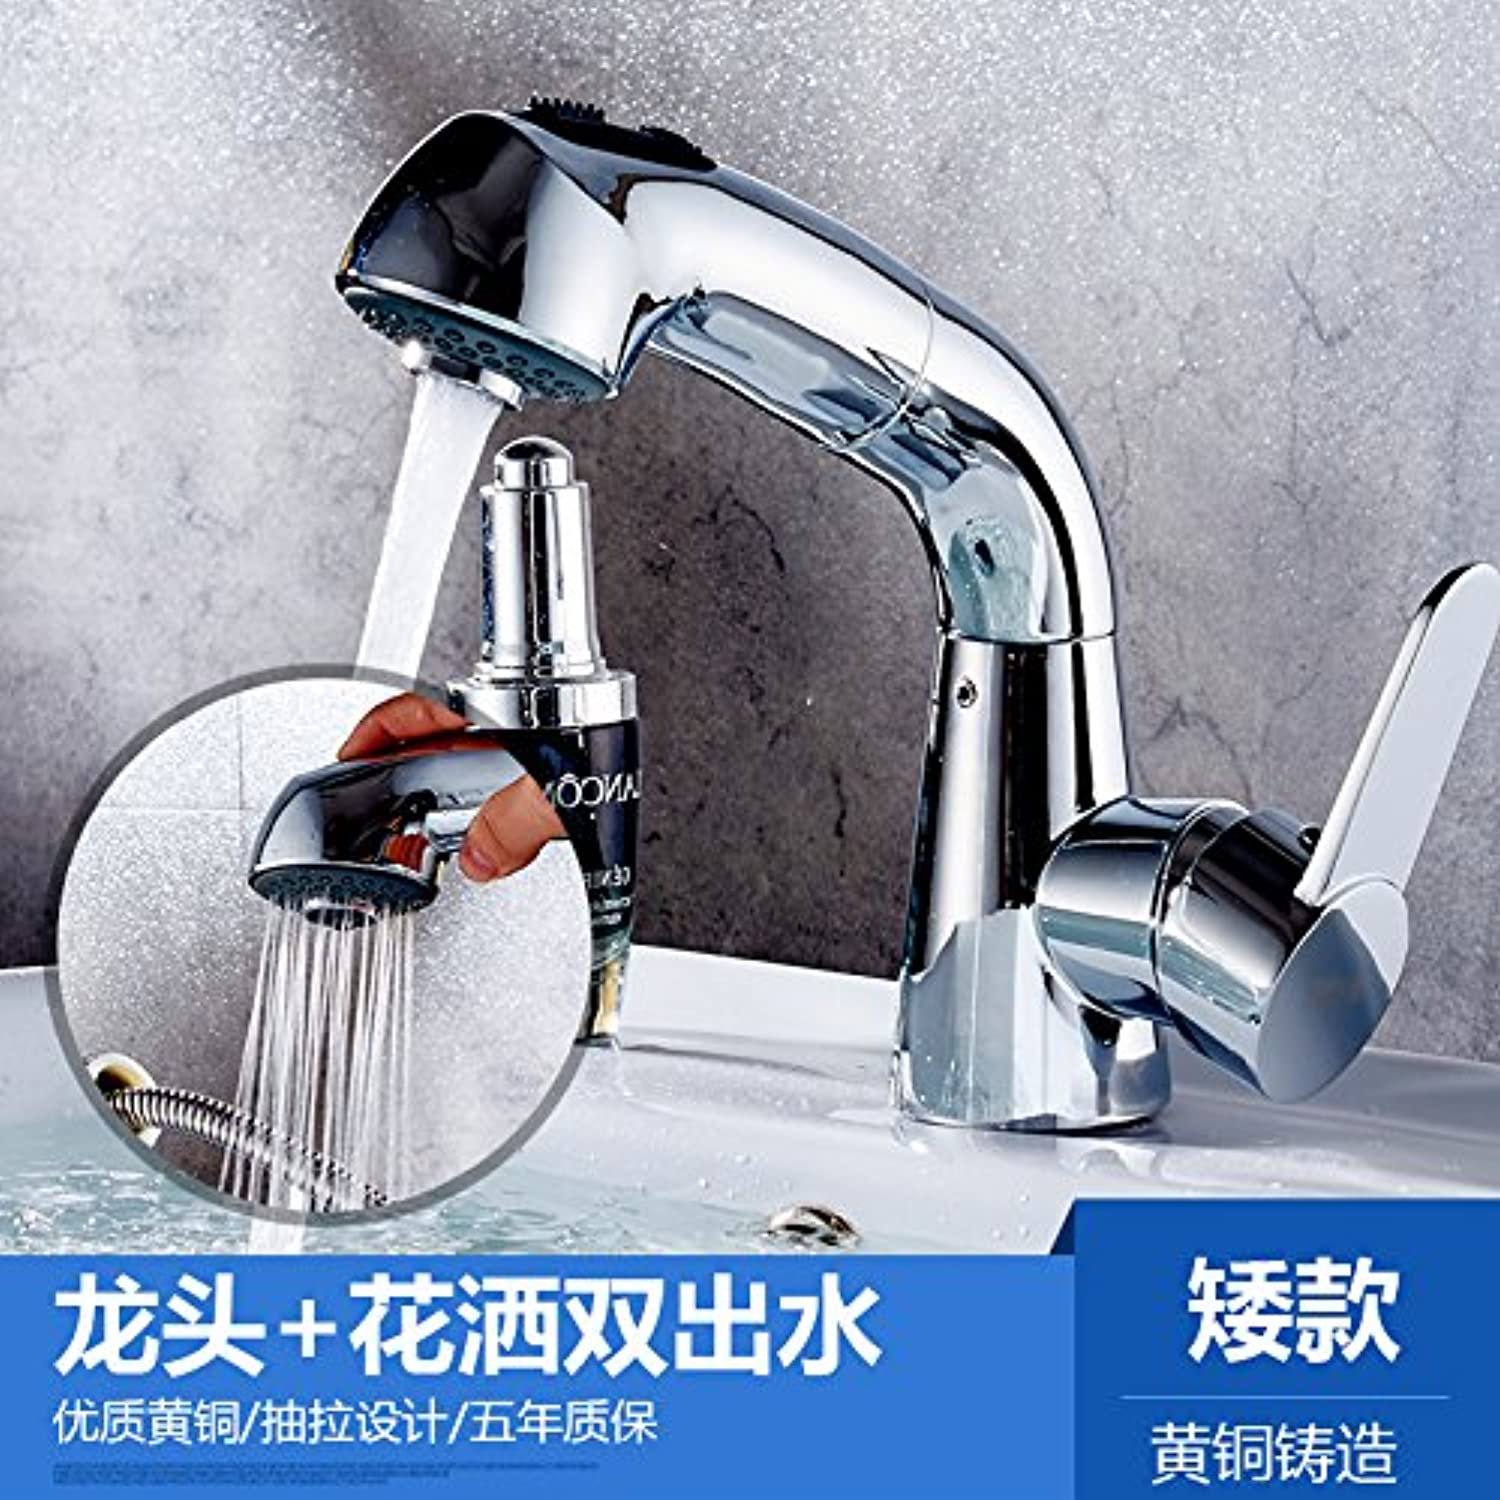 Hlluya Professional Sink Mixer Tap Kitchen Faucet All copper pull faucet telescopic basin mixer redation stretch can be hot and cold showers shampooing, two features to redate the low